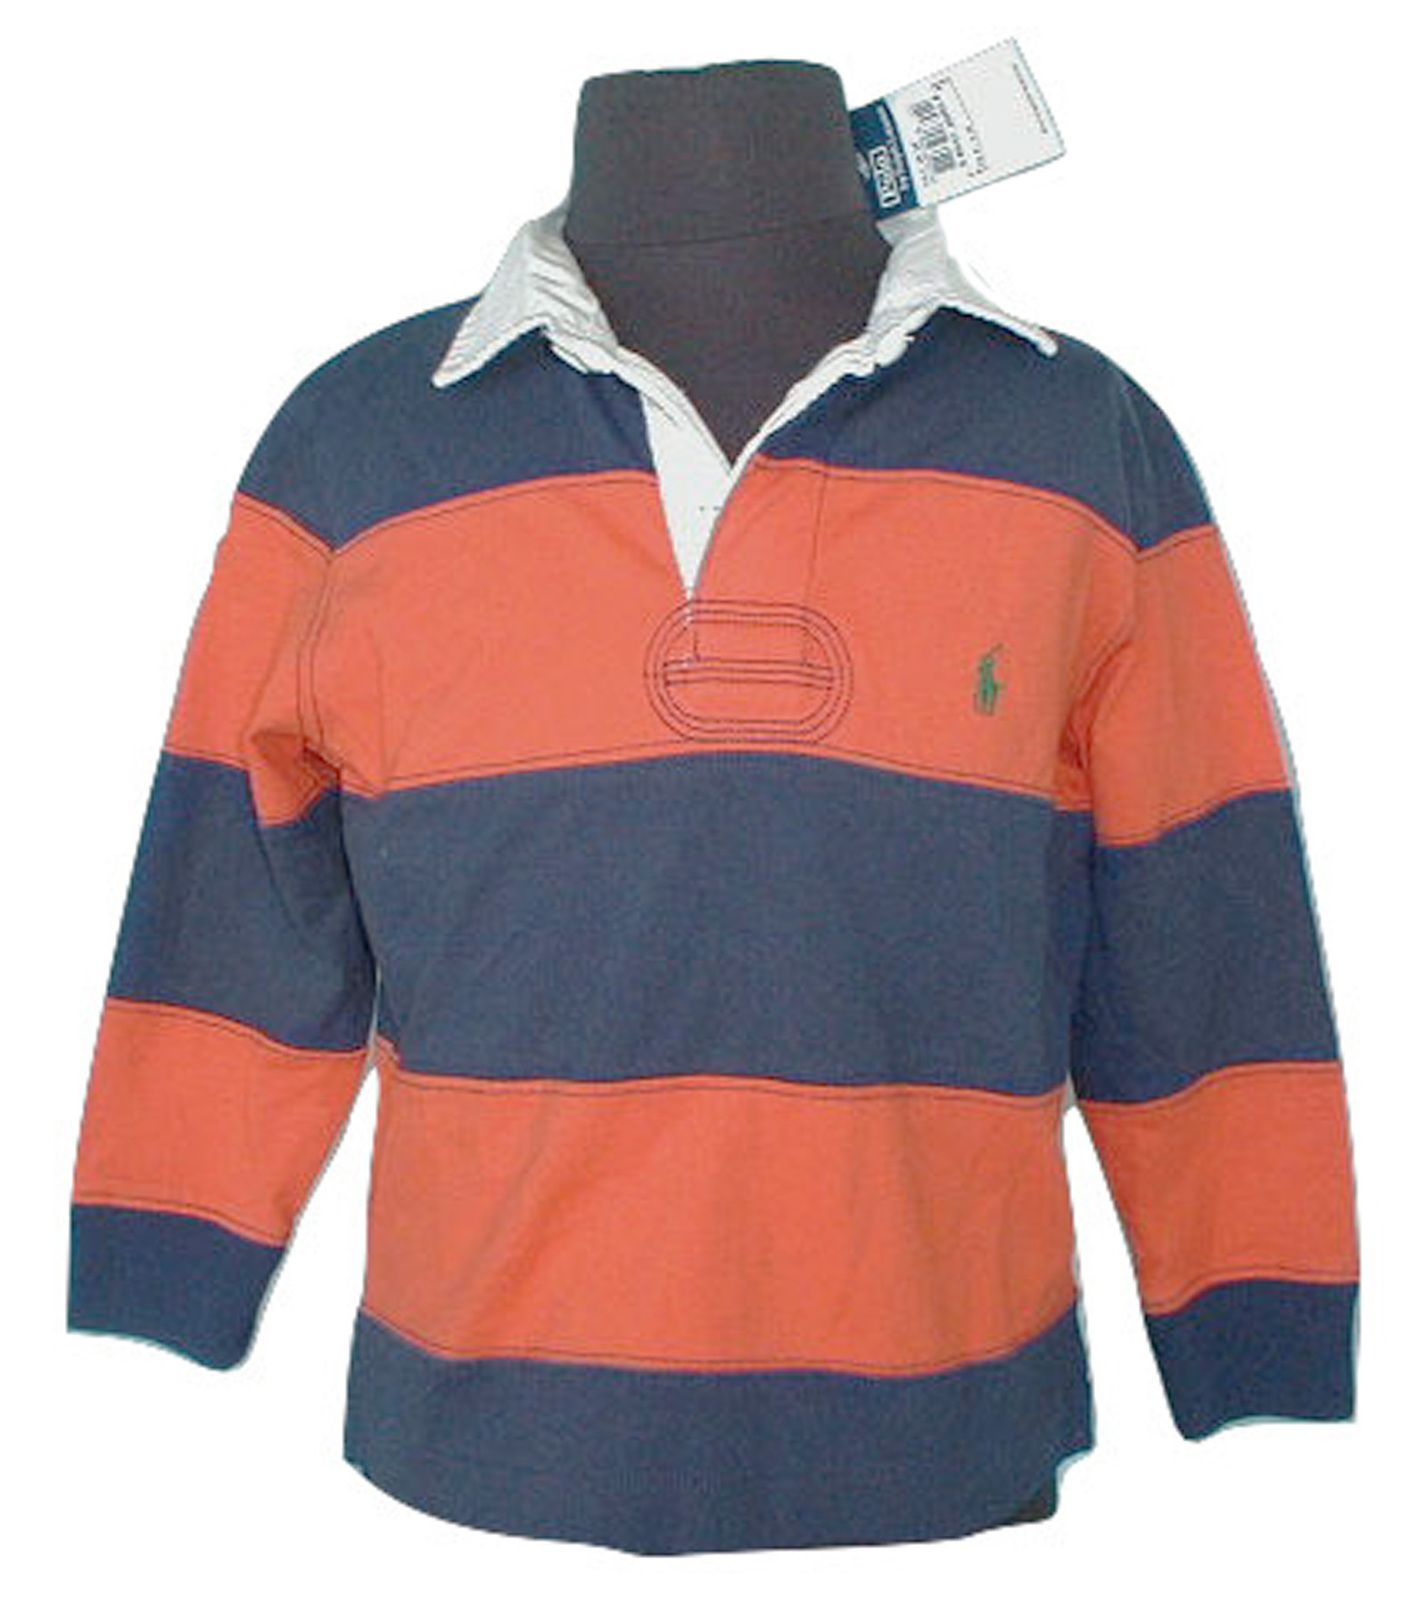 Polo Ralph Lauren Boys Striped Rugby